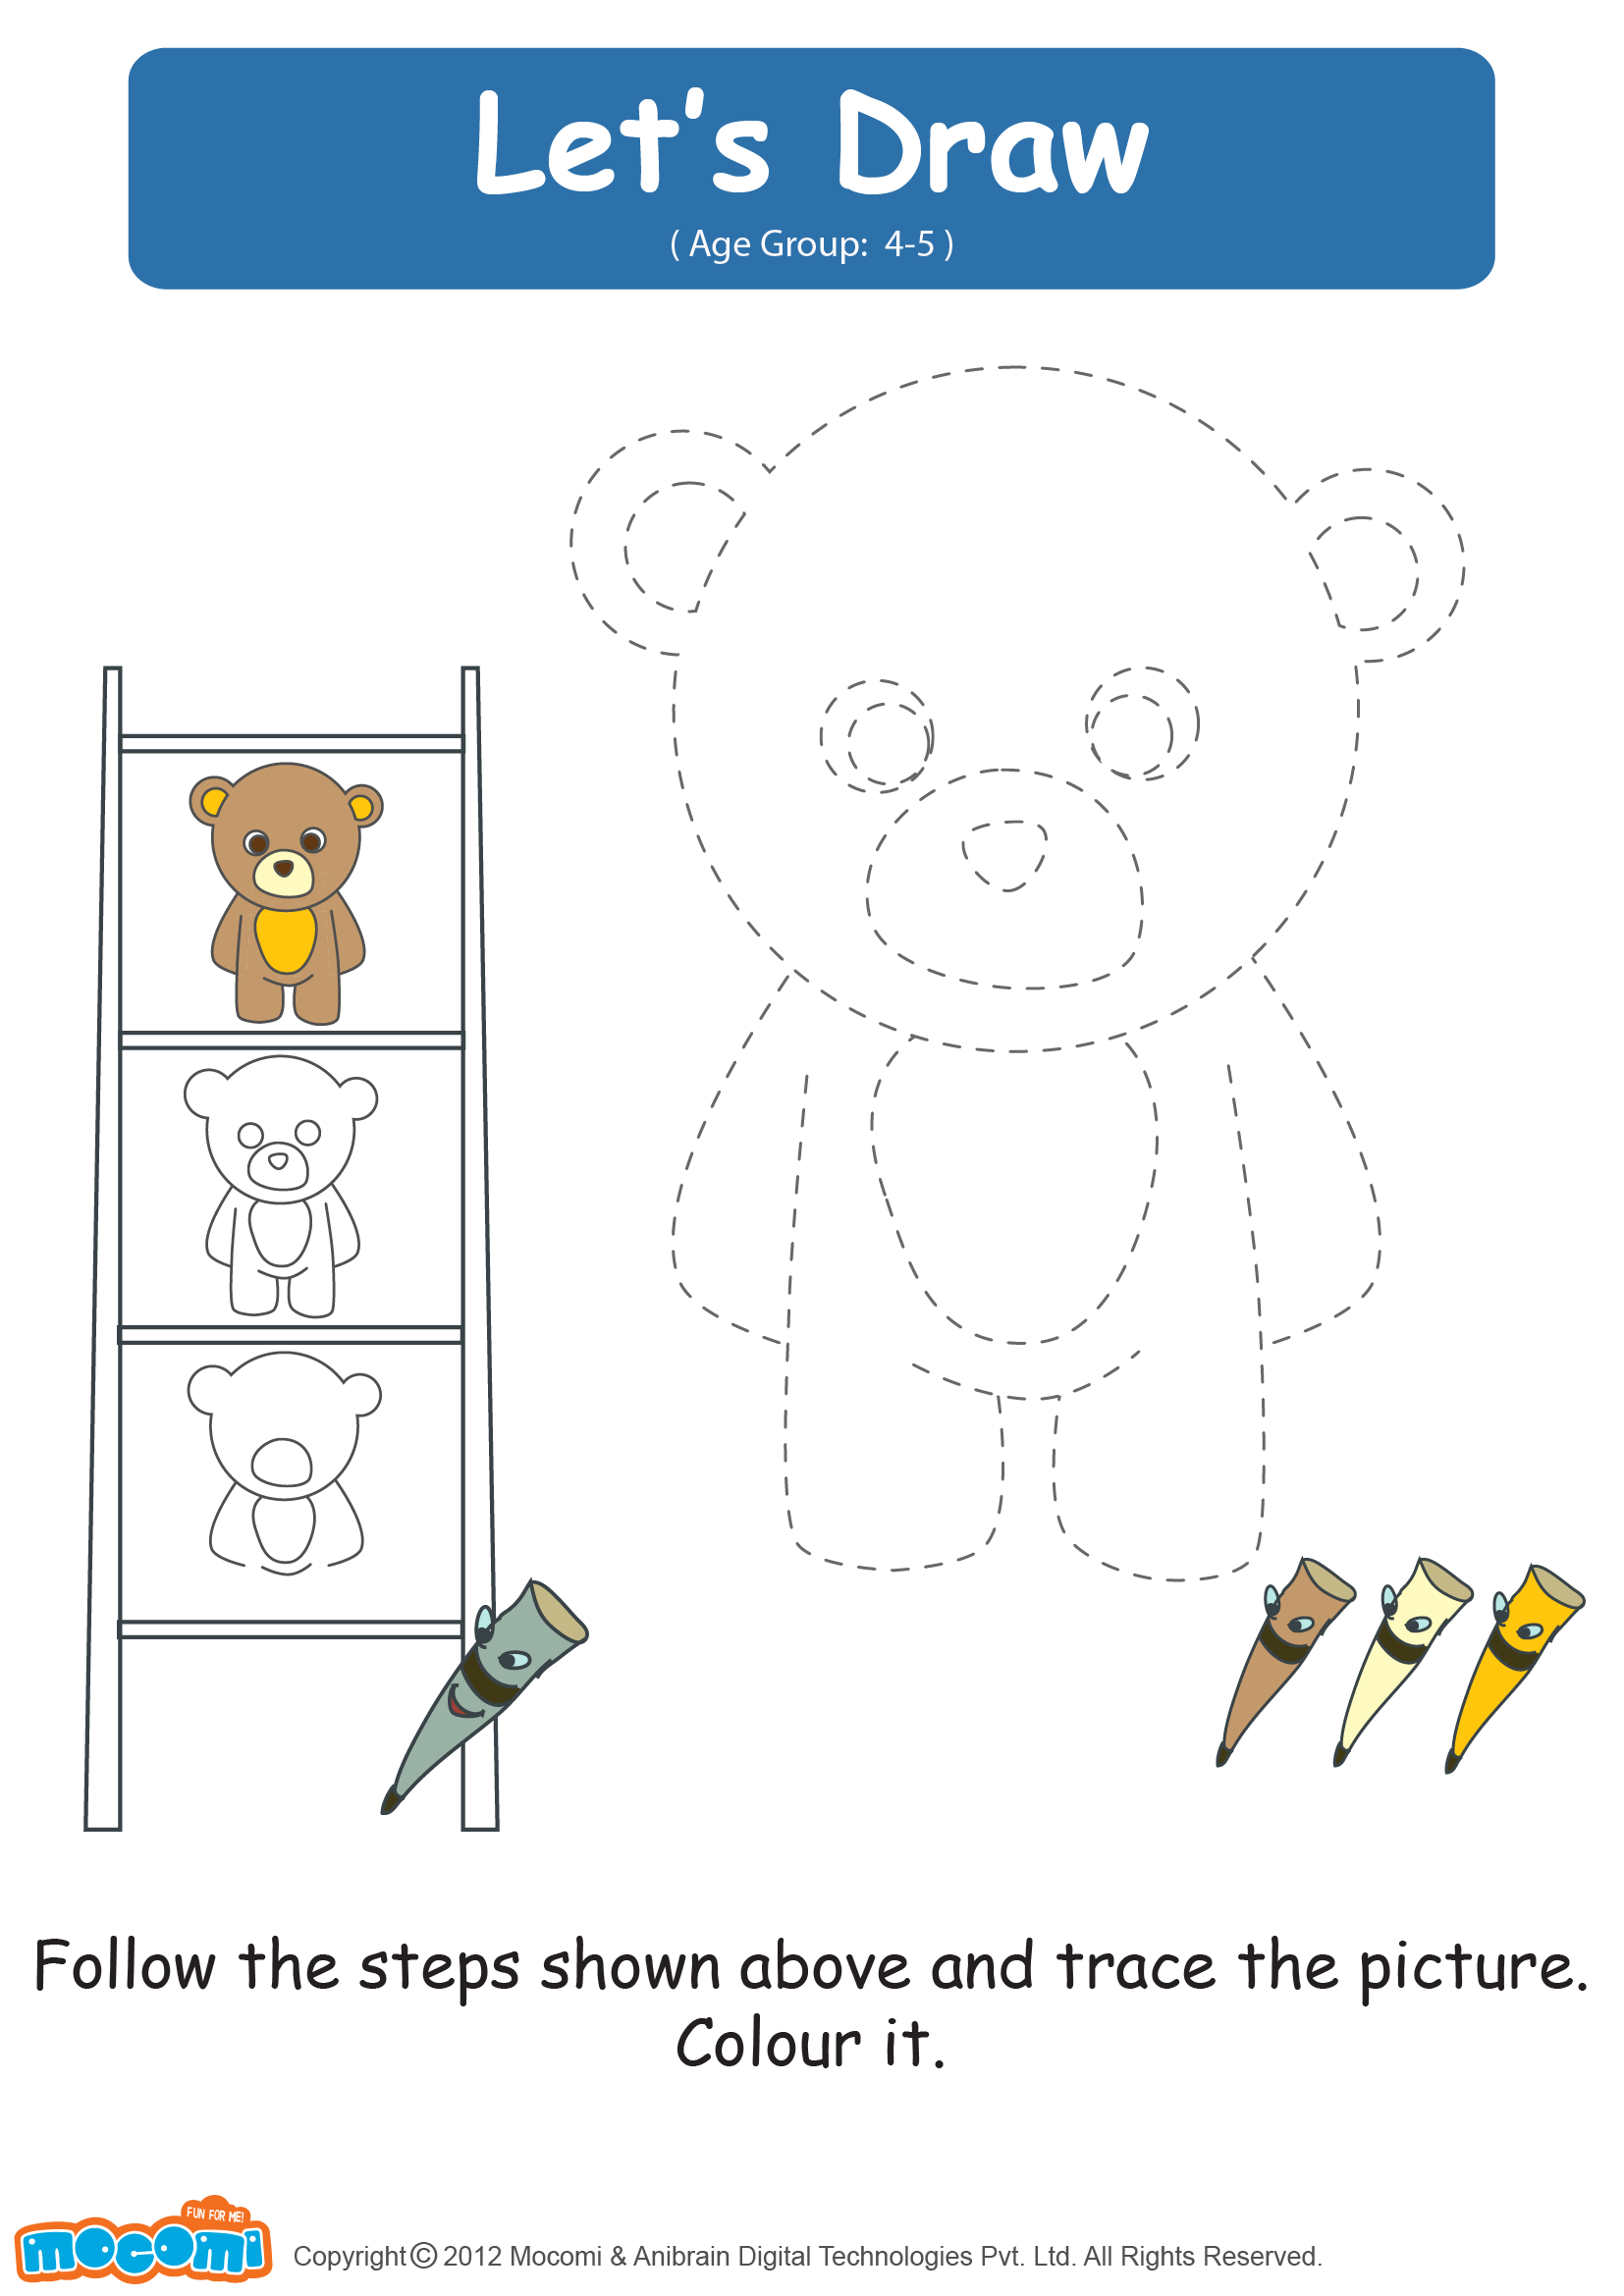 Let's Draw a Teddy